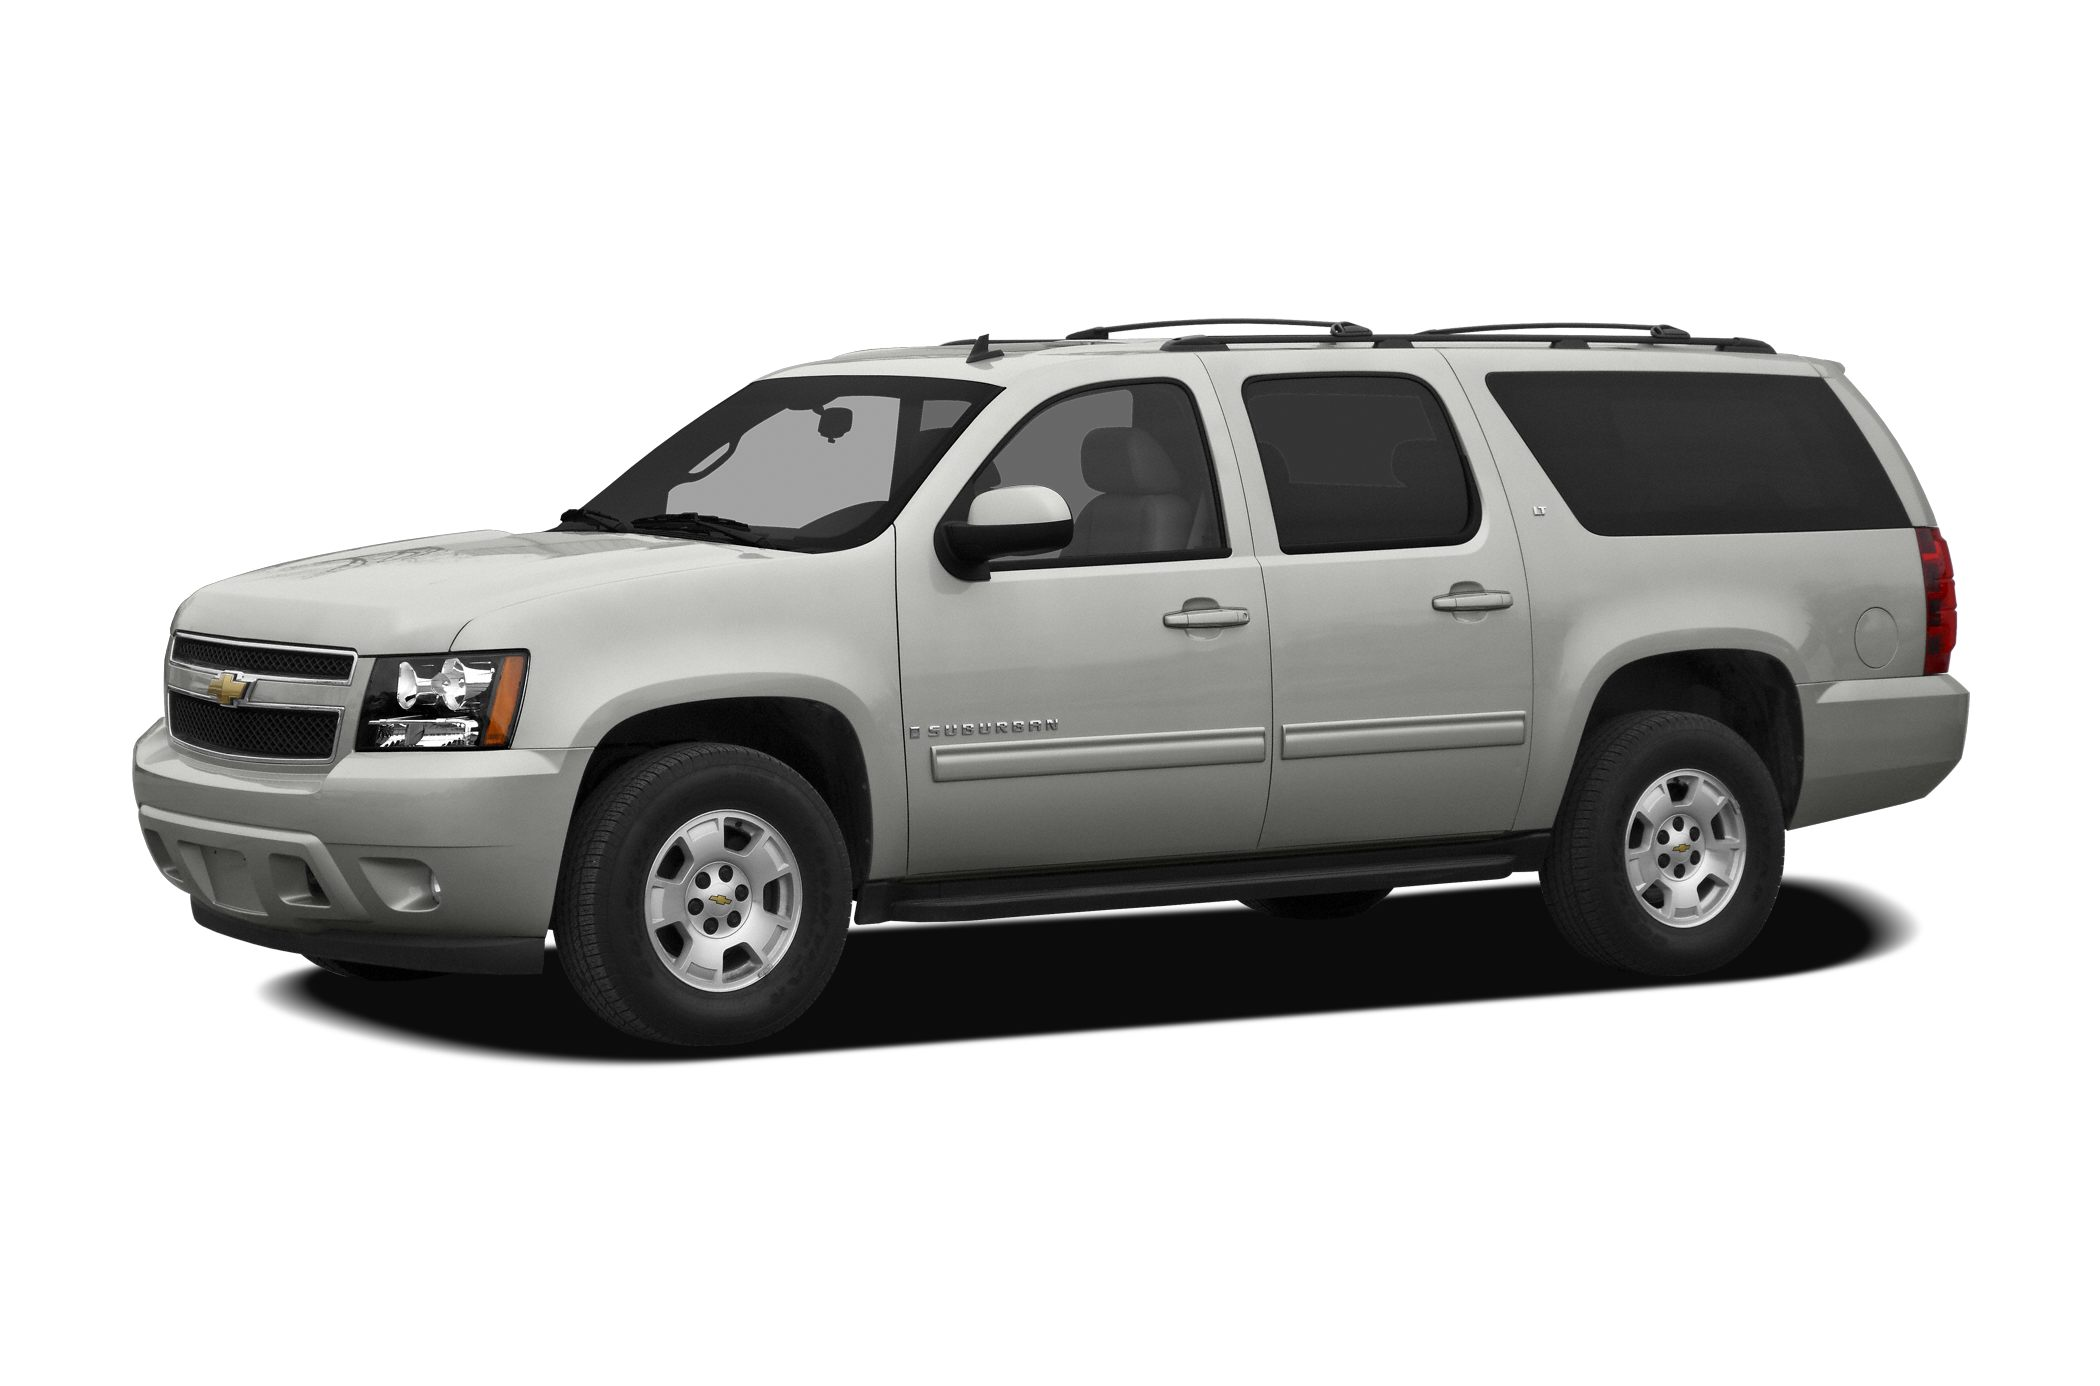 2012 Chevrolet Suburban 1500 LT SUV for sale in Knoxville for $34,991 with 59,778 miles